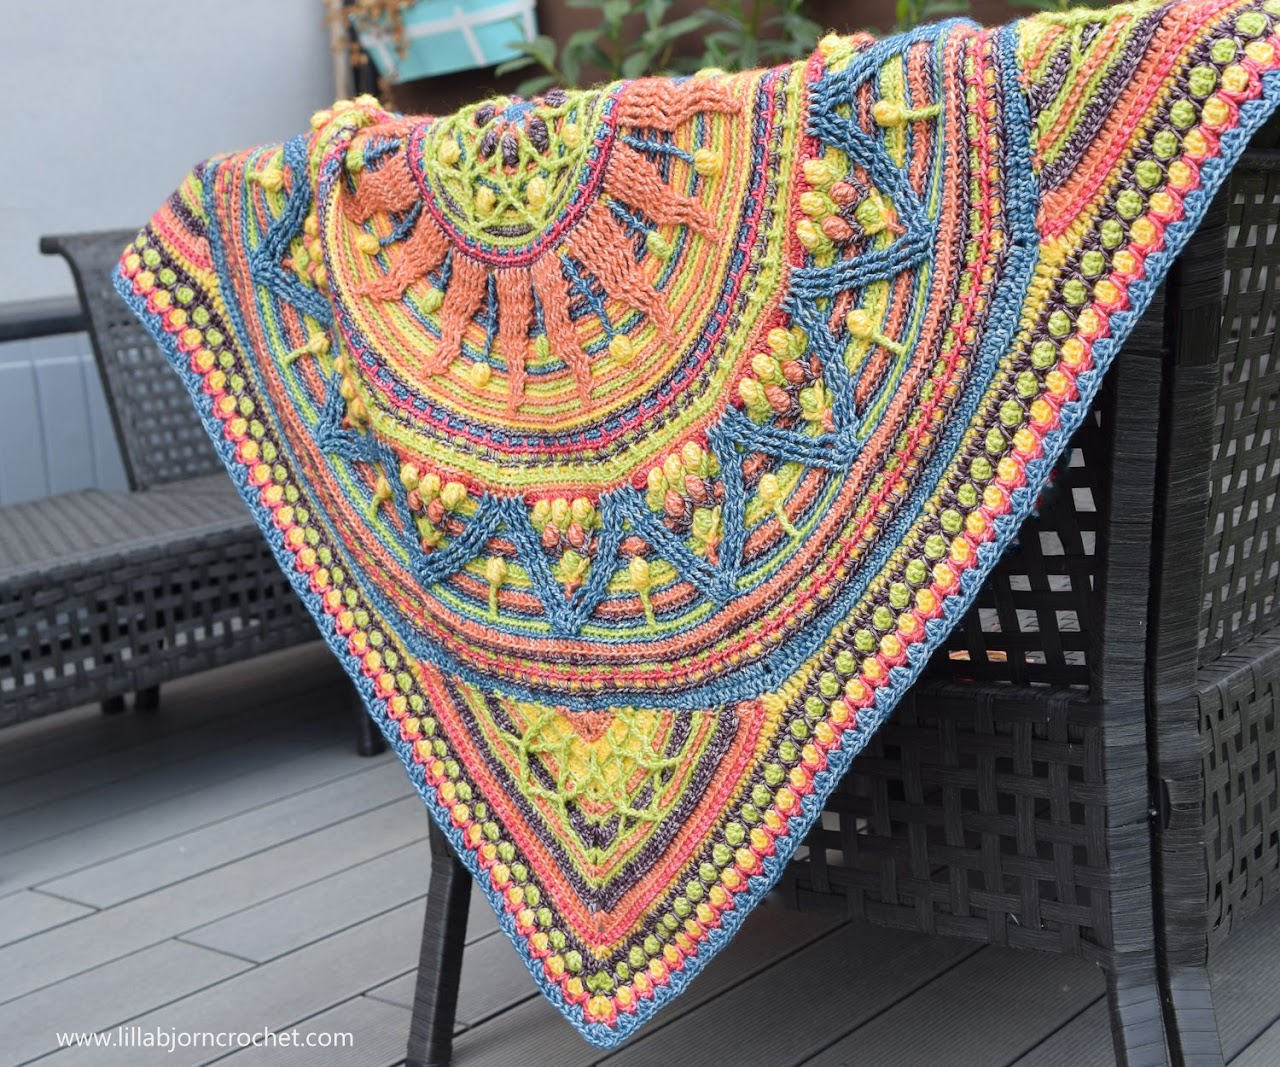 Sunny Madnala and Border_overlay crochet patterns by www.lillabjorncrochet.com